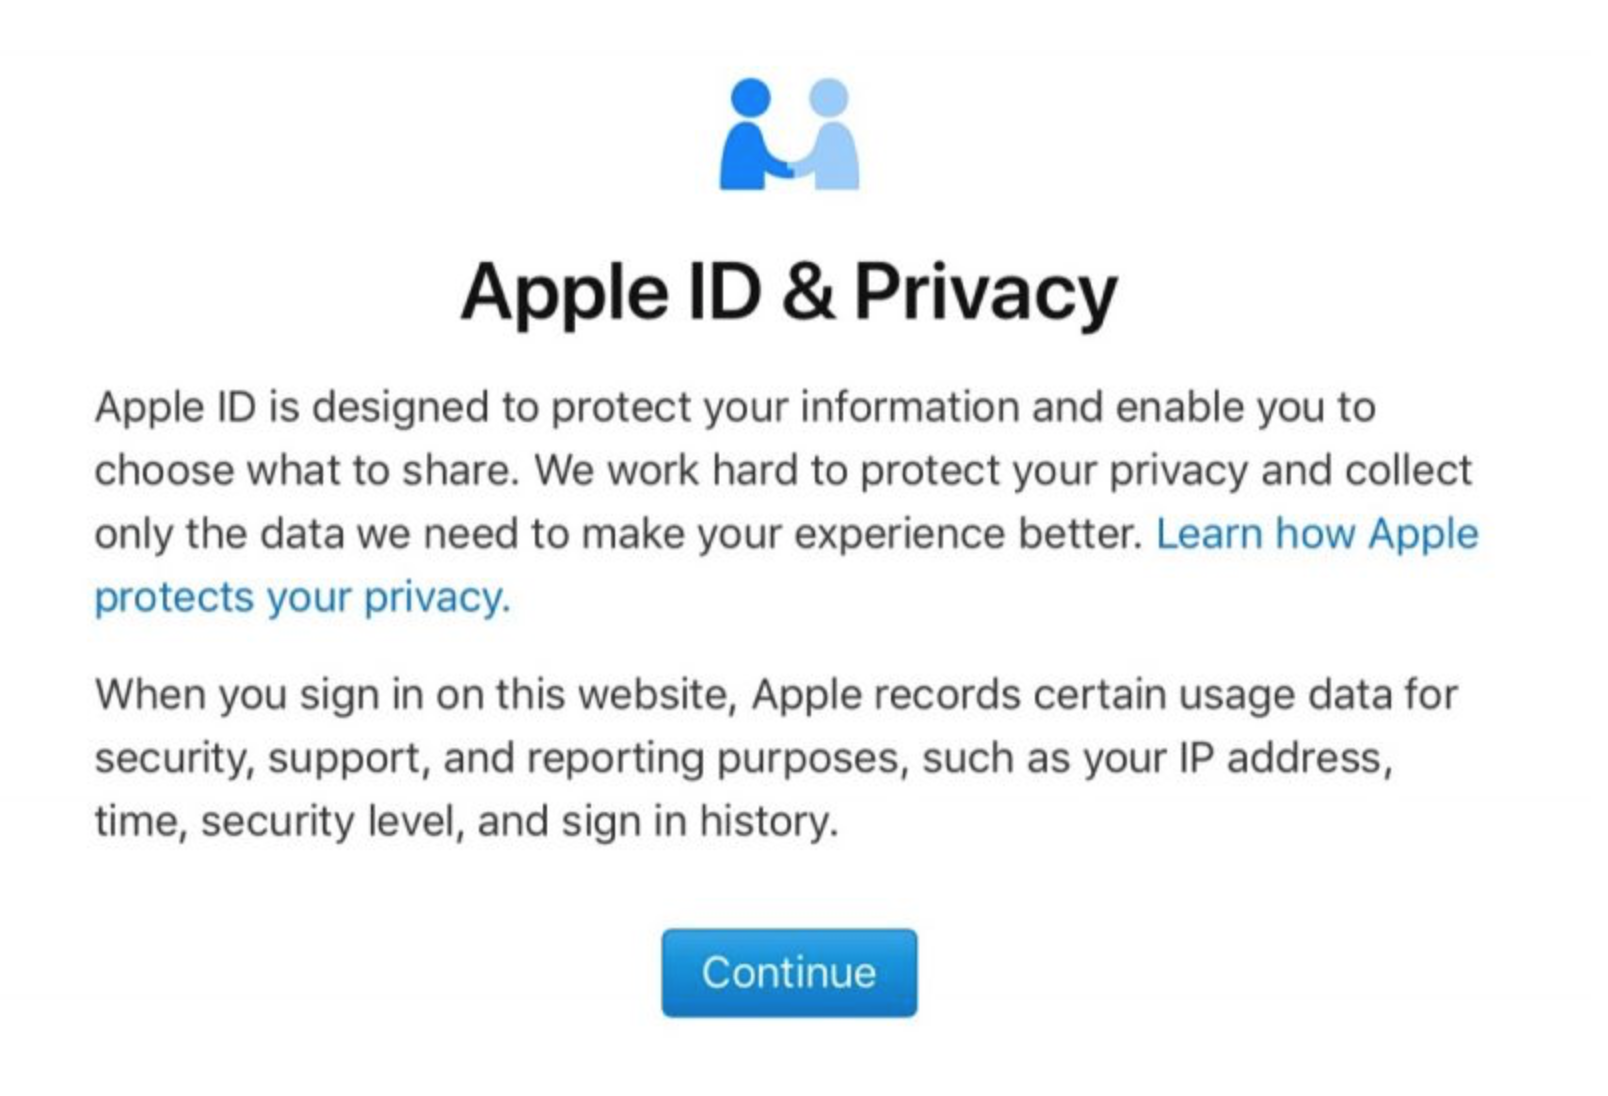 apple data & privacy